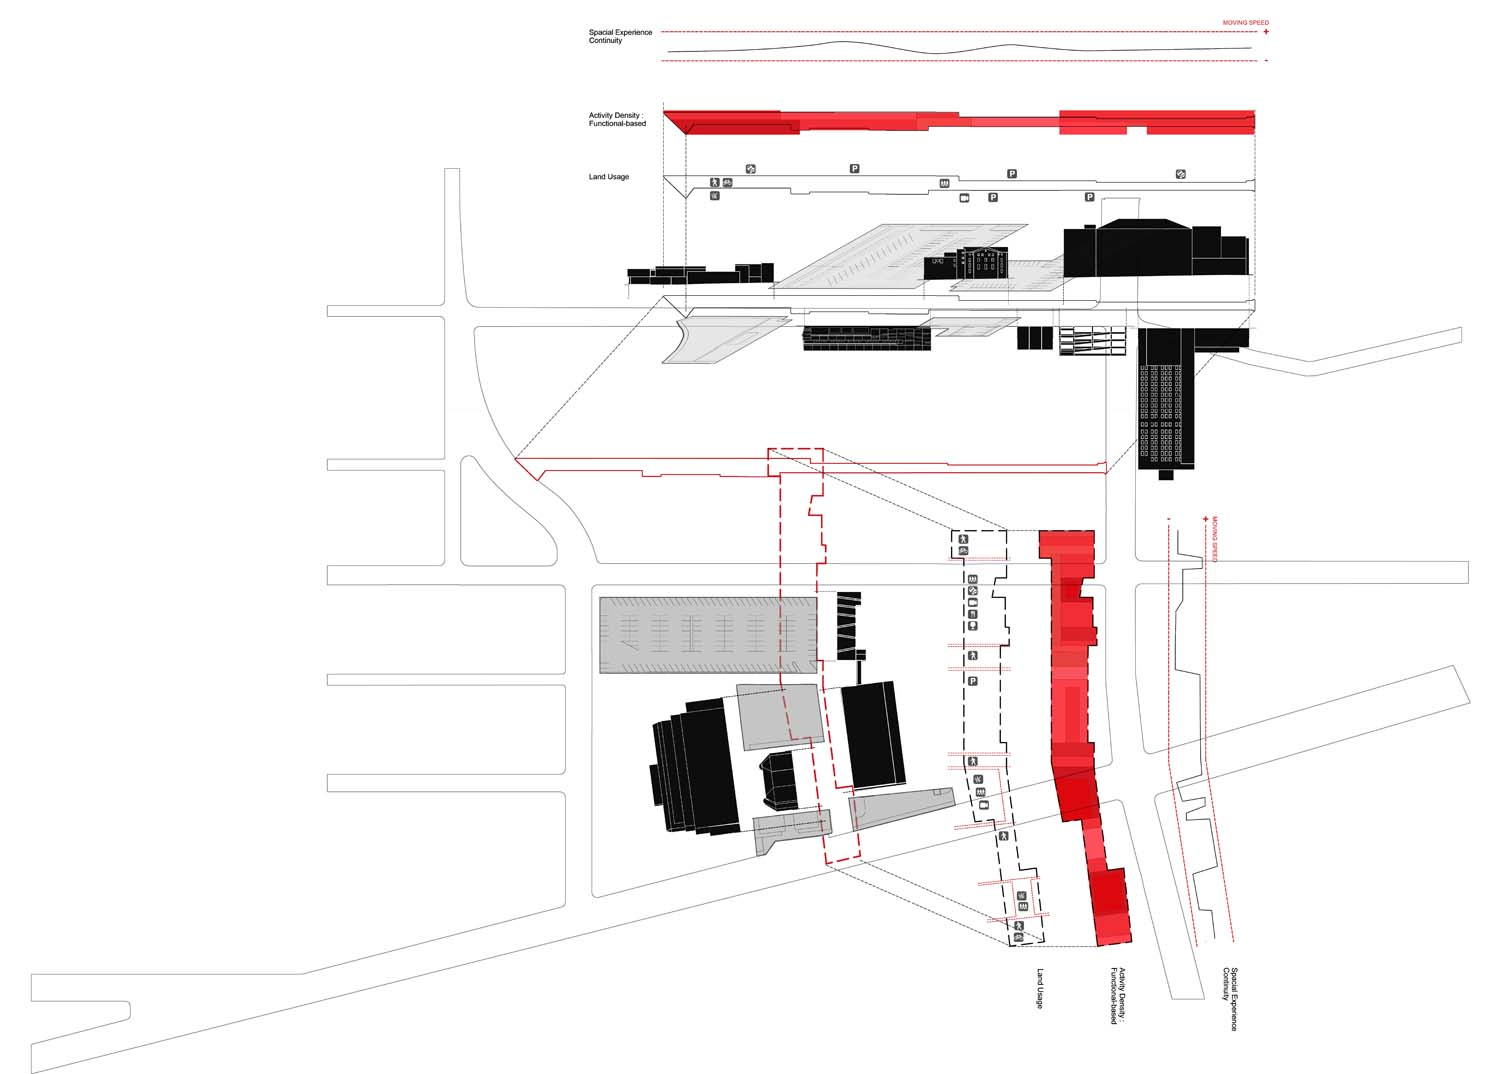 Axi Ome Umsl In Grandcenter Diagrams